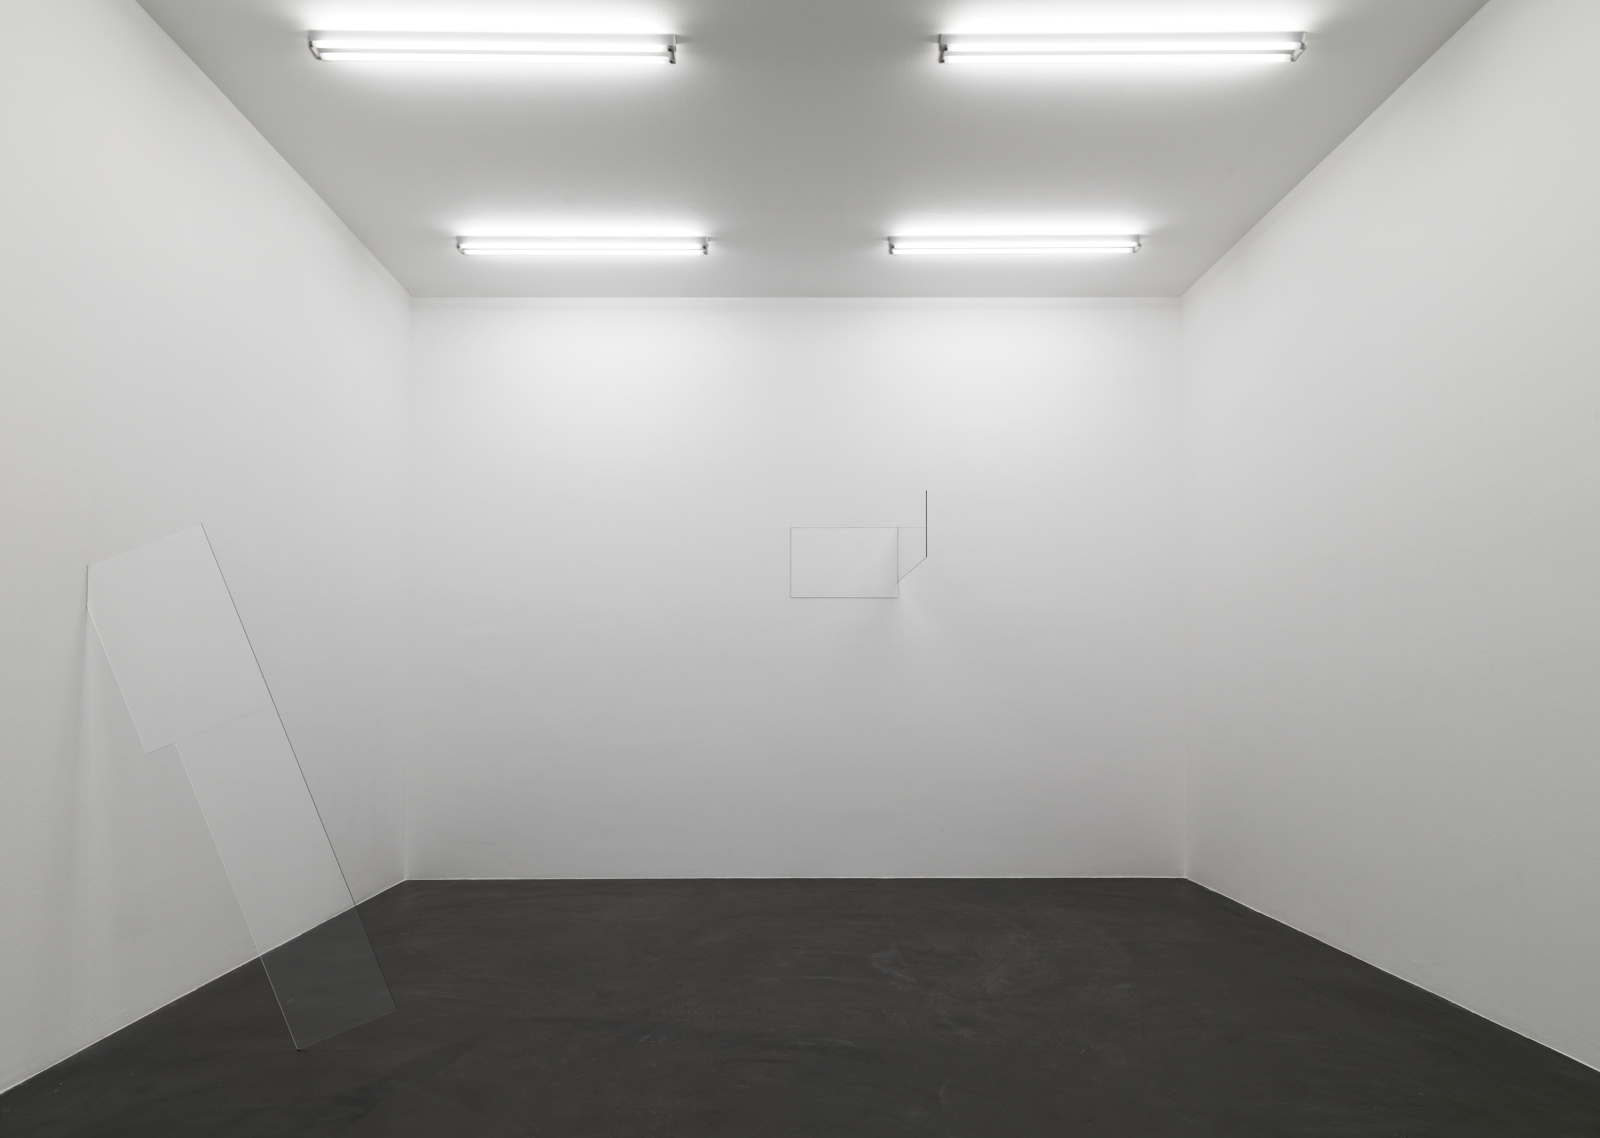 Kitty Kraus / Exhibition view, Kunsthalle Zürich / 2008